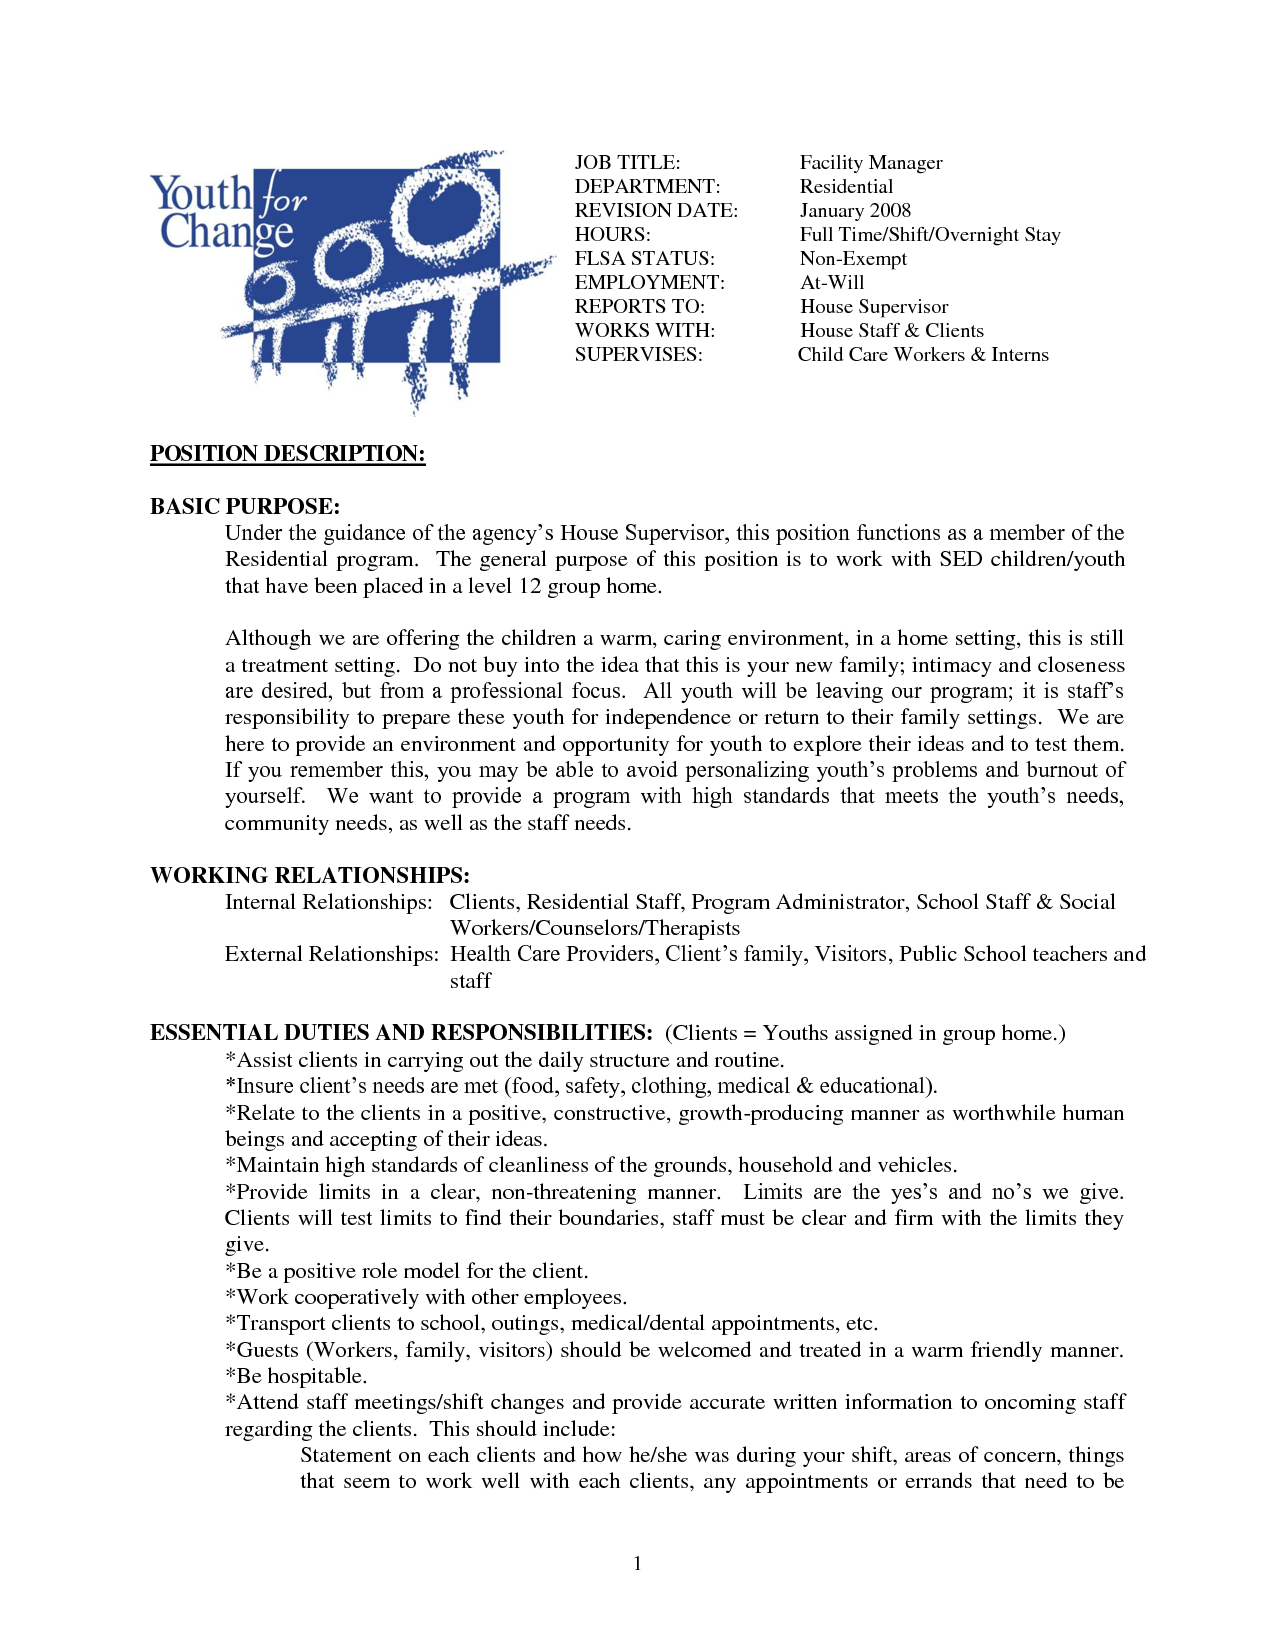 Cleaning Business Resume And Job Description House Cleraing